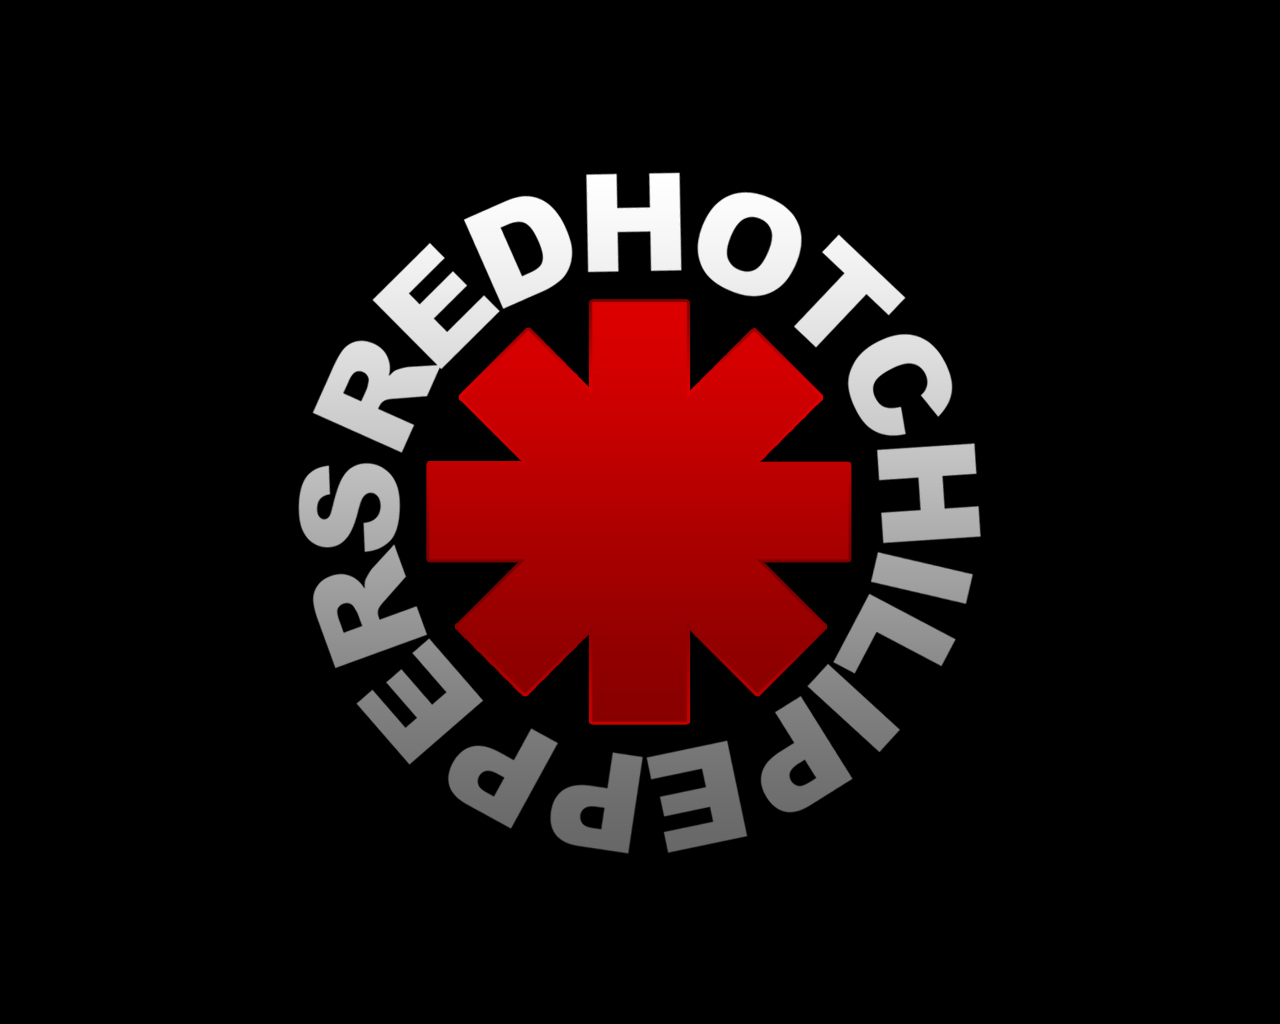 Red Hot Chili Peppers Logo Wallpaper